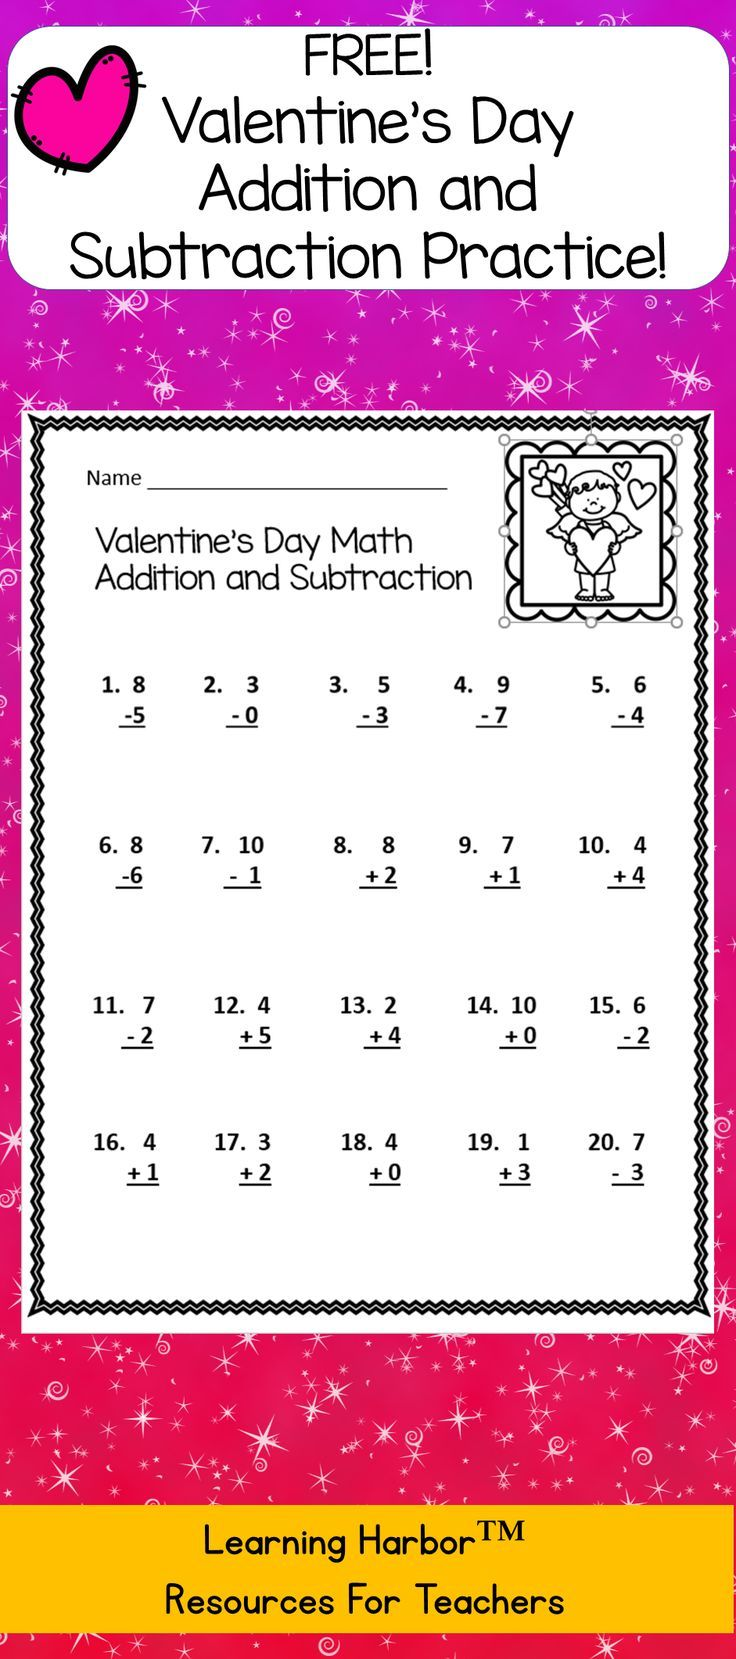 This Valentine's Day mixed addition and subtraction resource is a Just in Time One Page resource. Great for bell ringers, morning work, sub tub or anytime you need a quick activity.